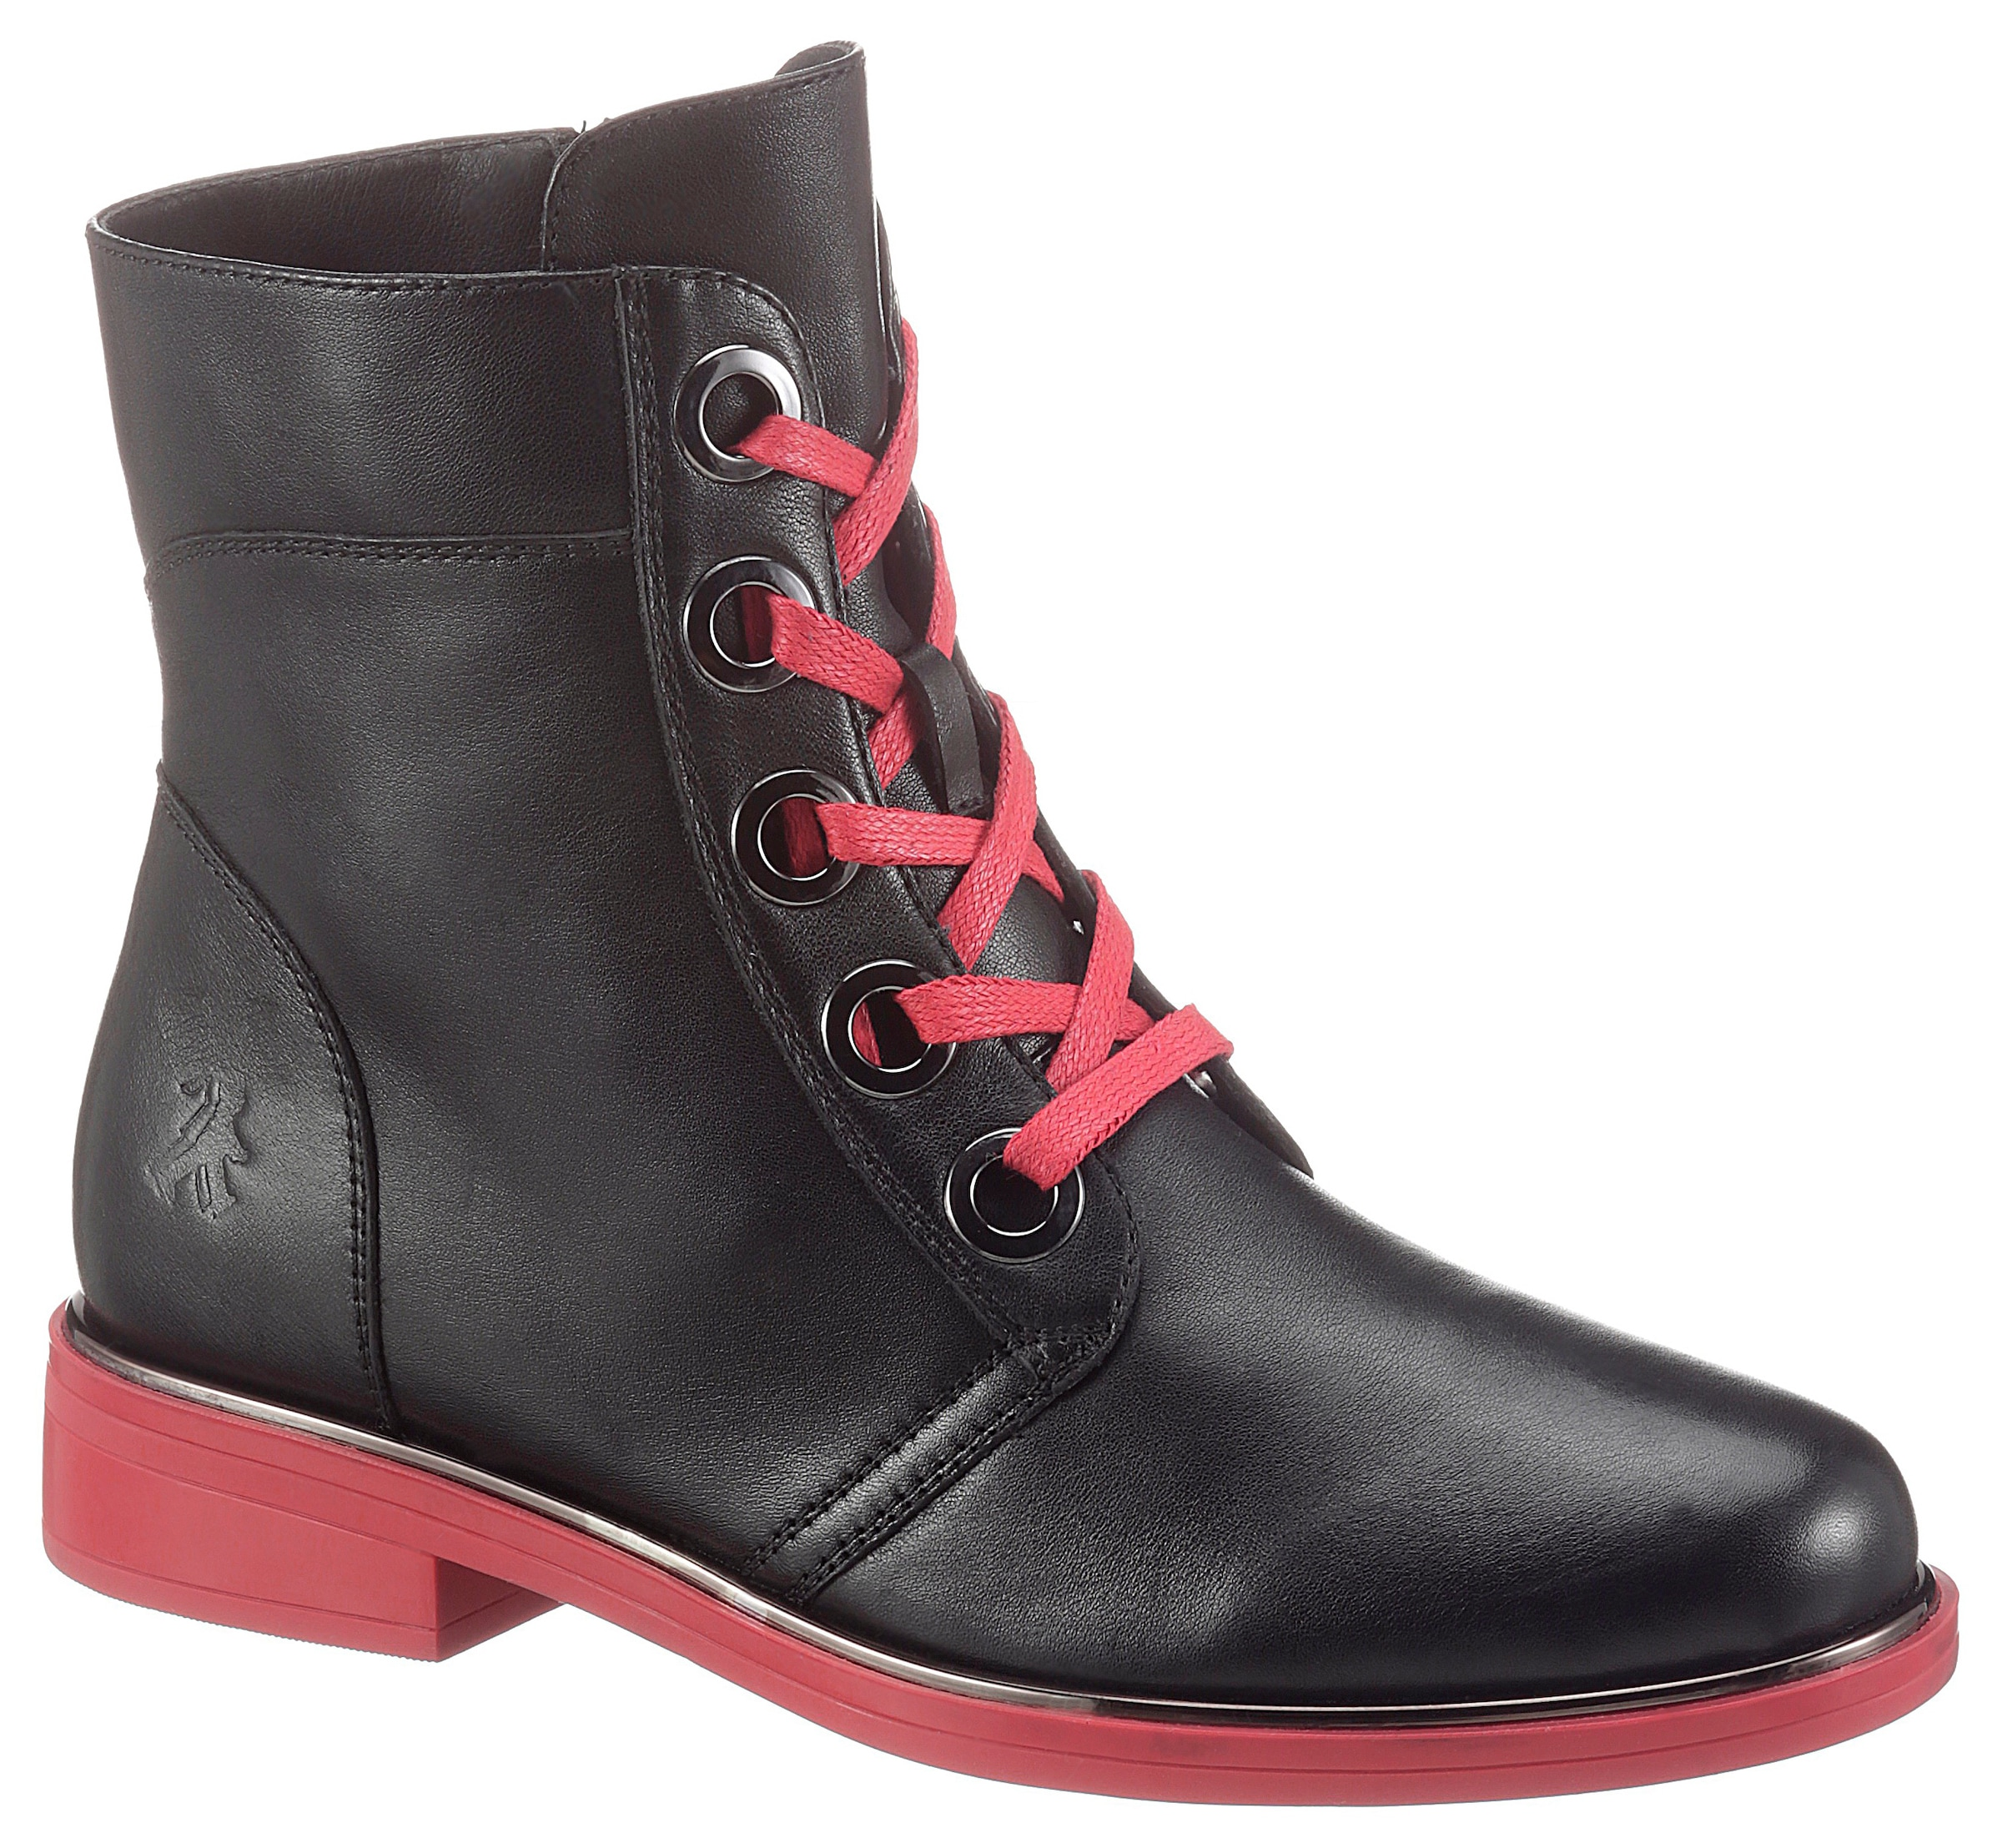 Image of 2GO FASHION Schnürboots